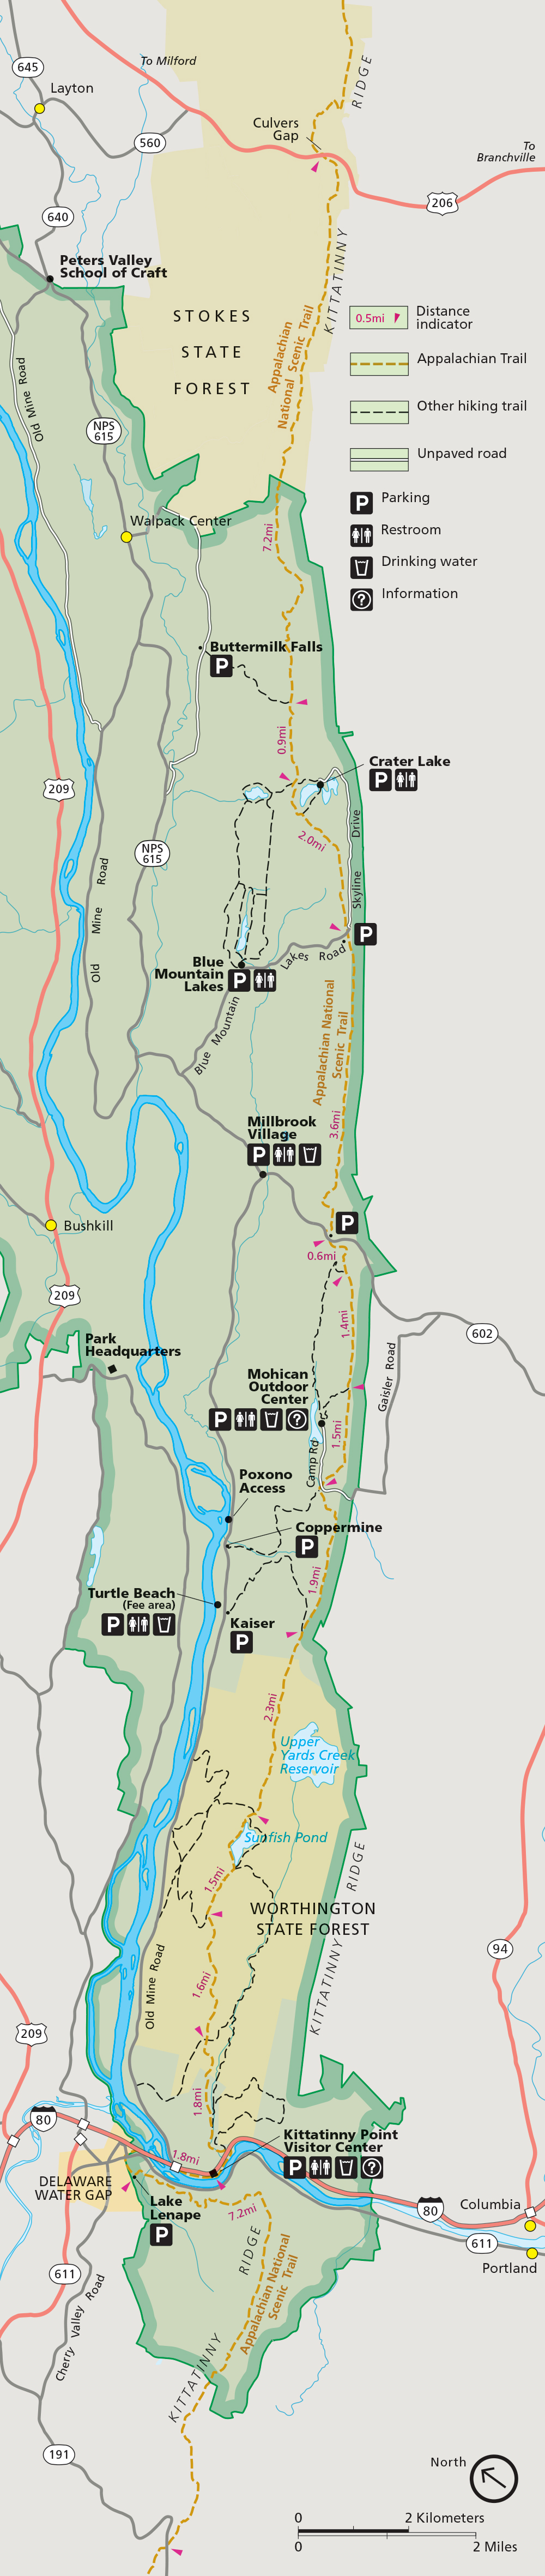 appalachian national scenic trail  delaware water gap national  - appalachian trail map high resolution